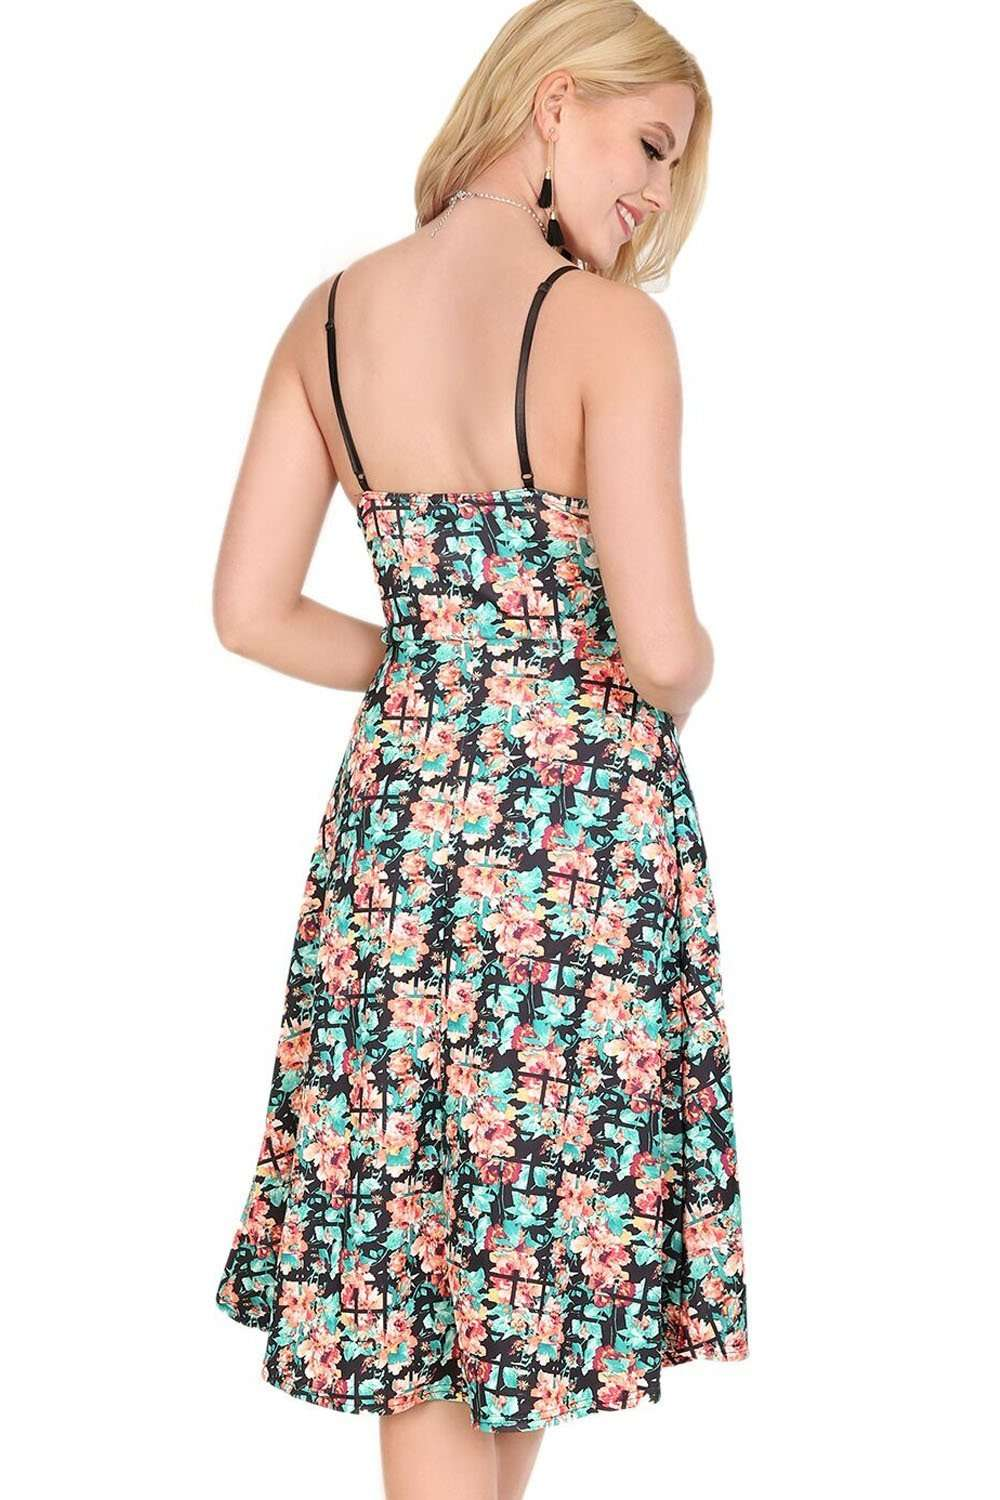 Melissa Floral Abstract Print Midi Swing Dress - bejealous-com